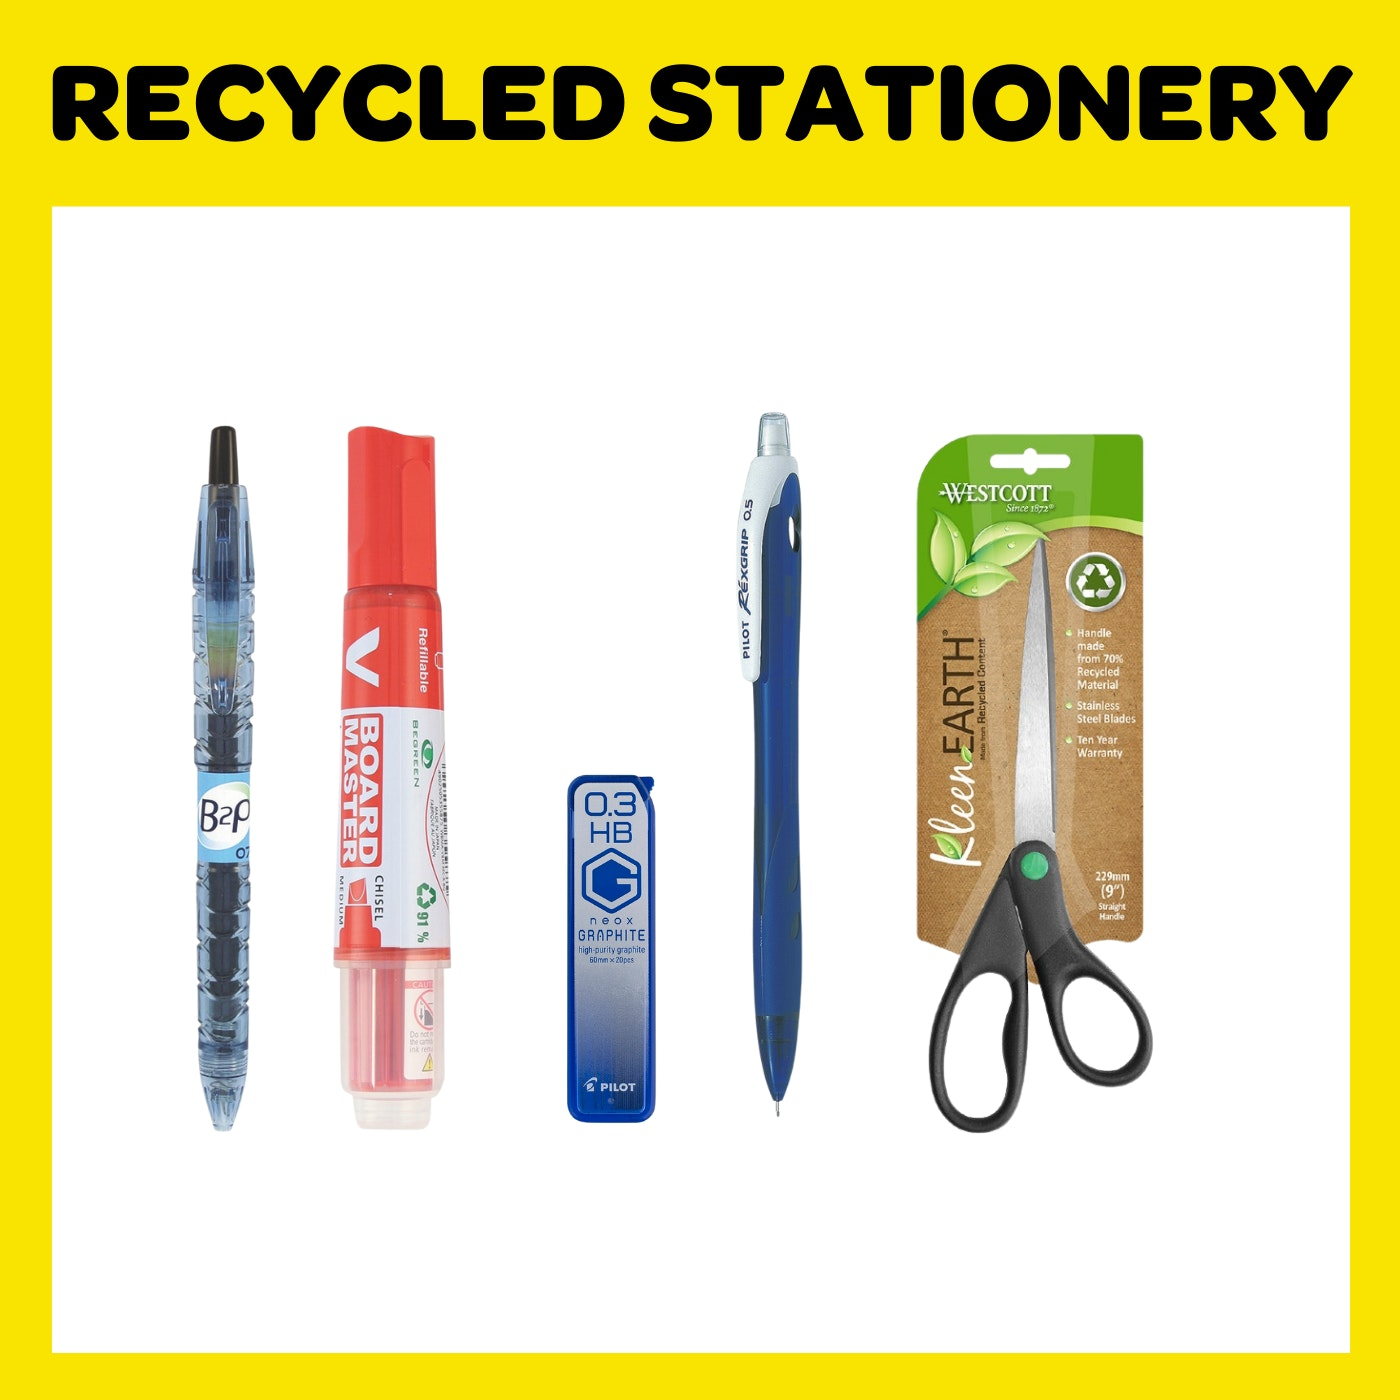 Recycled Stationery